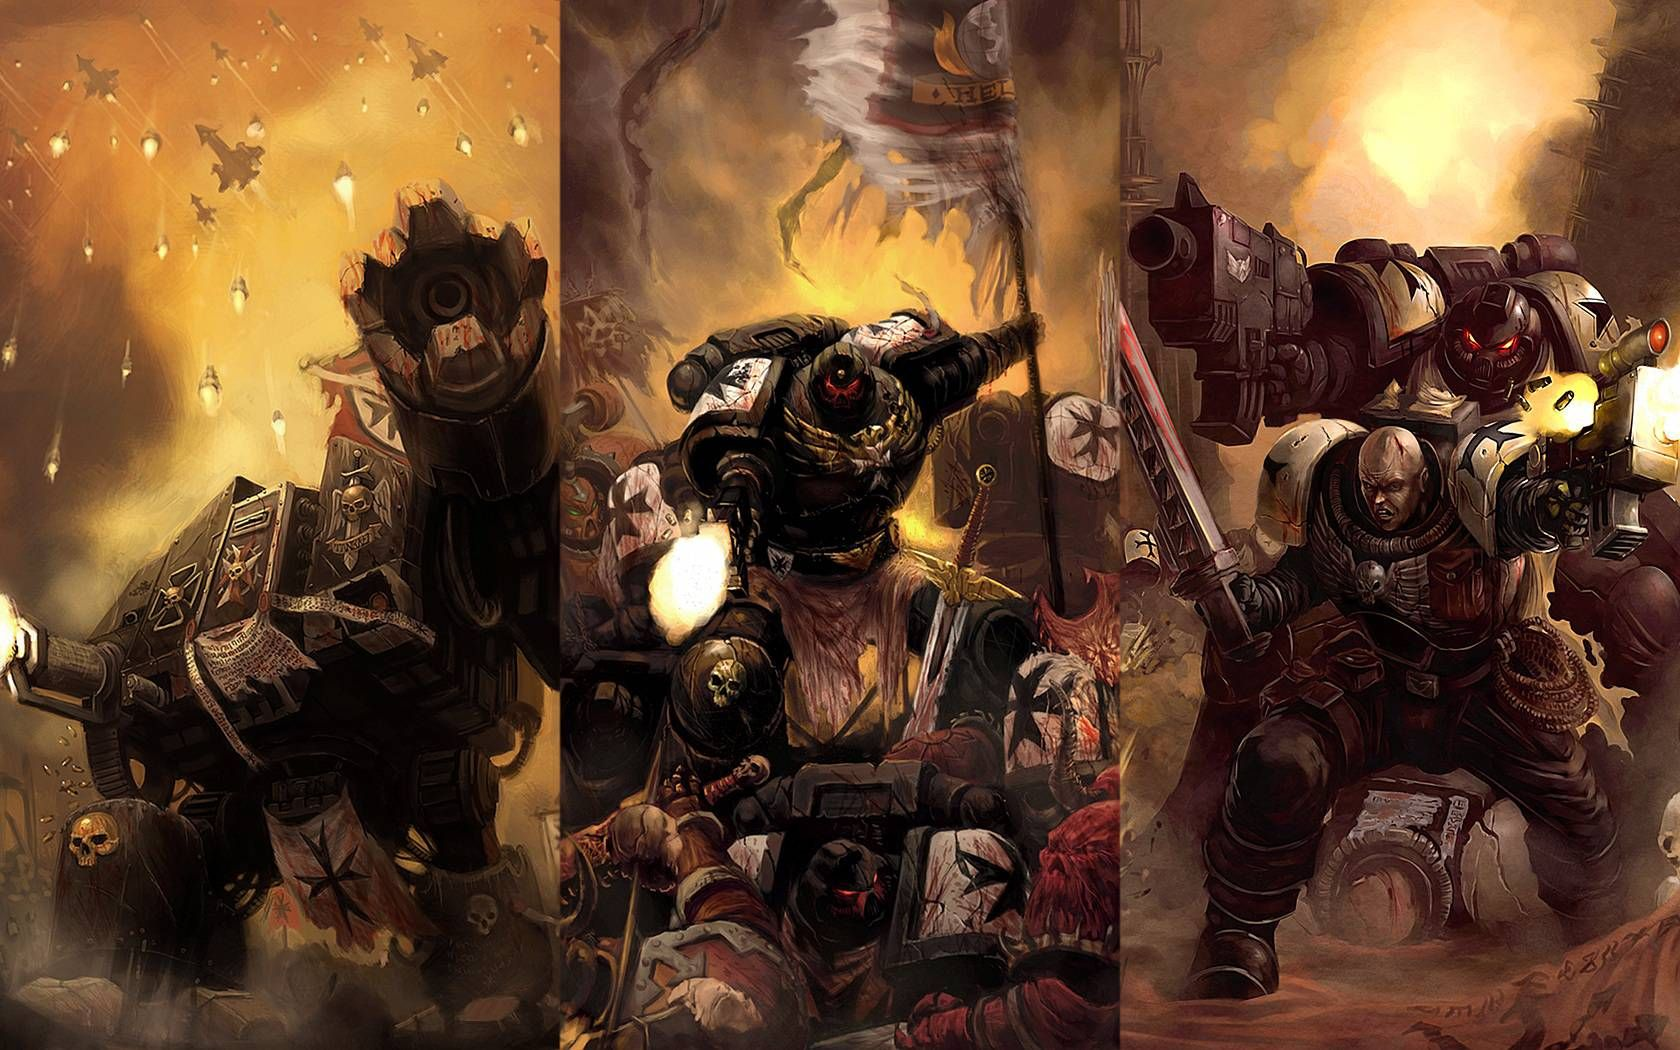 Warhammer 40k Wallpaper 2 Hq Wallpaper 23035 Anime Wallpaper Cool Anime Wallpapers Hd Anime Wallpapers